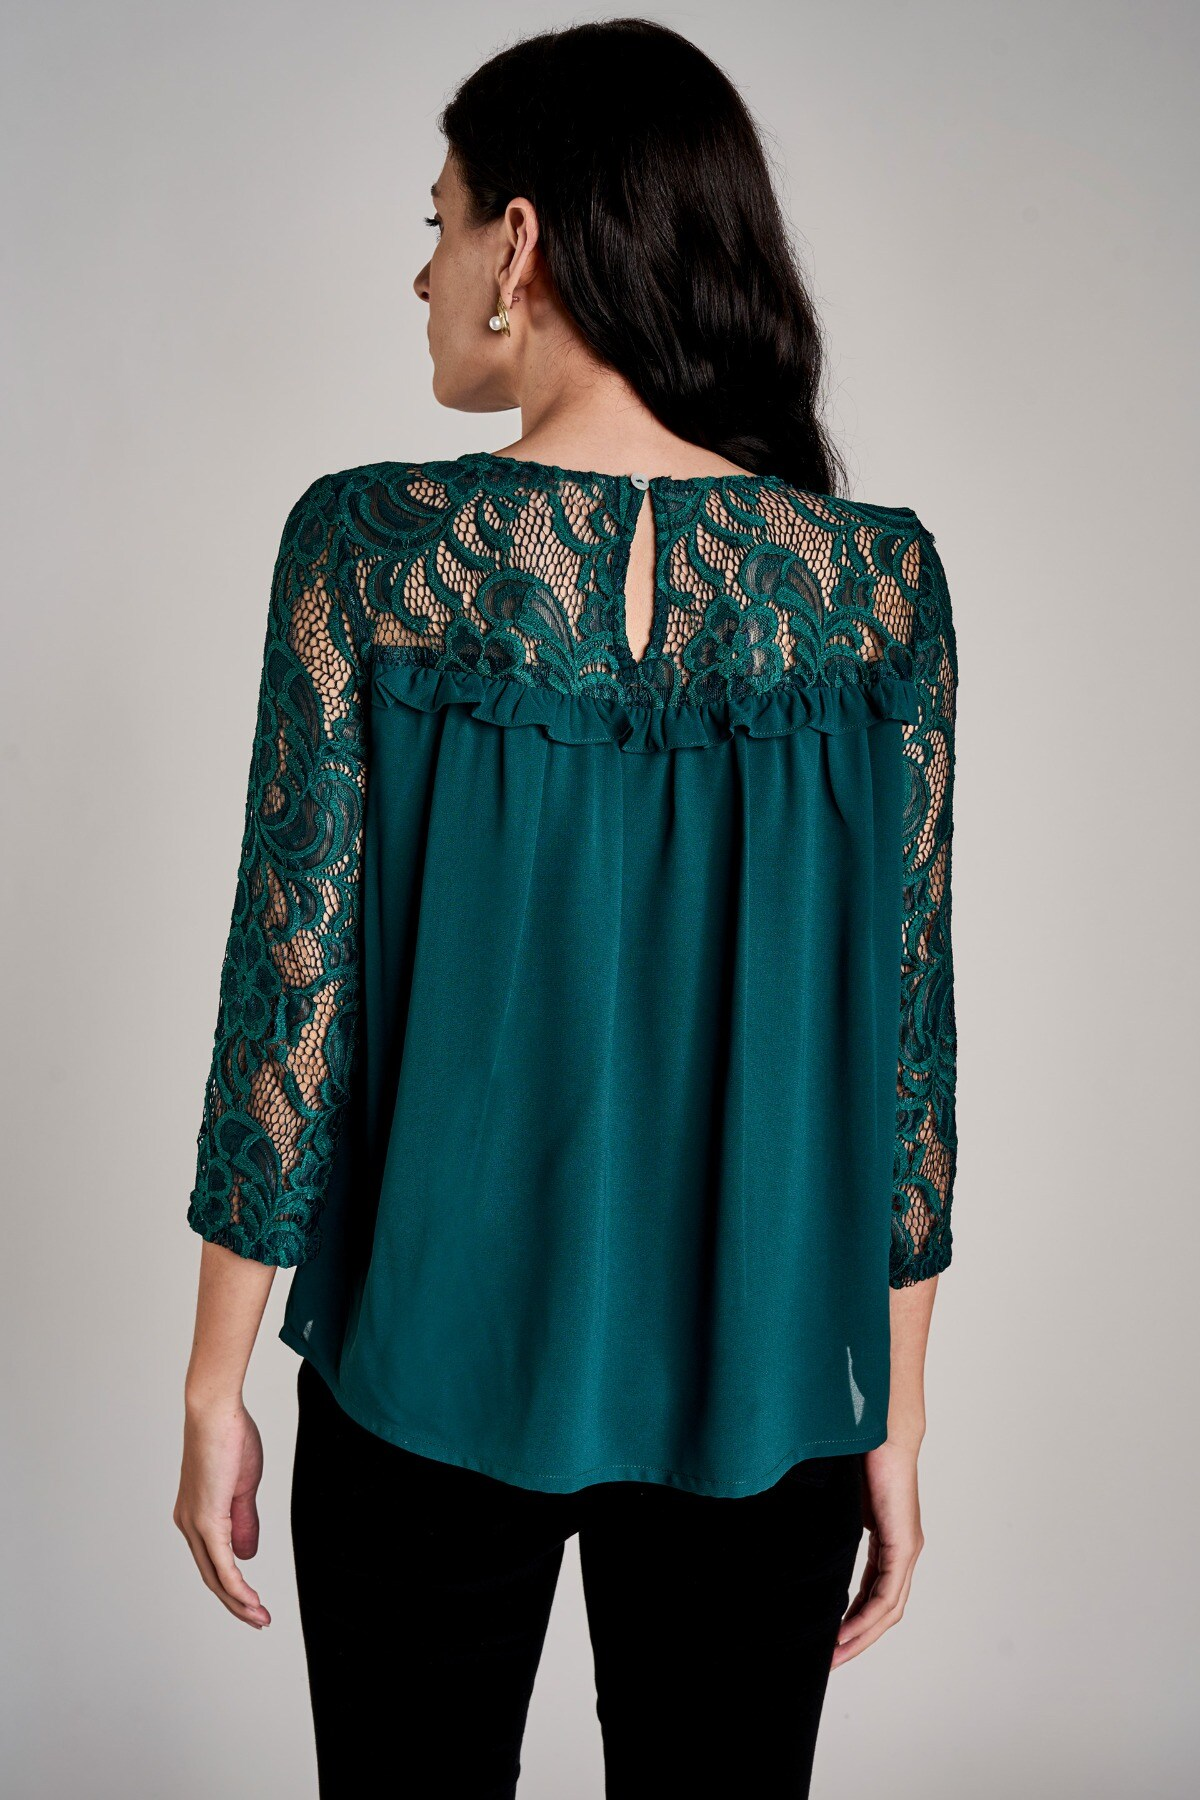 AND | Emerald Green Round Neck A-Line Top